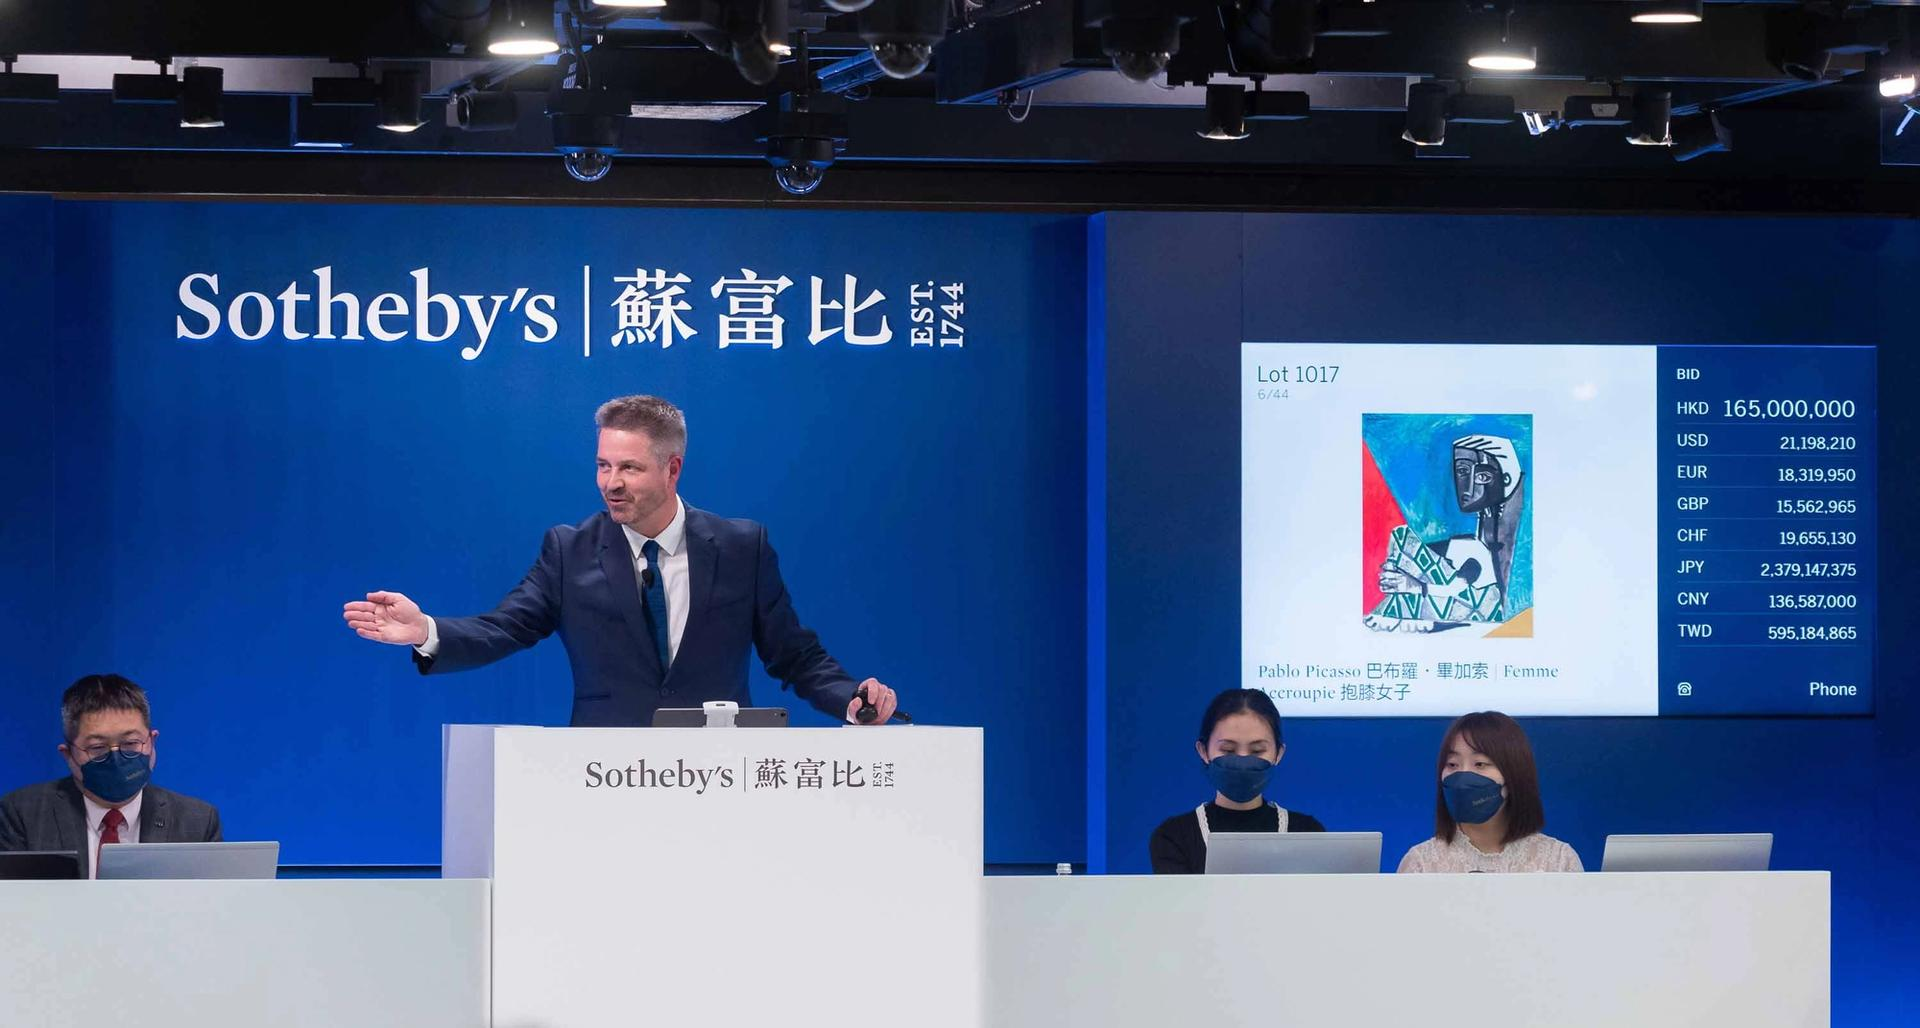 A work by Pablo Picasso tops Sotheby's Modern art sale in Hong Kong  Courtesy of Sotheby's